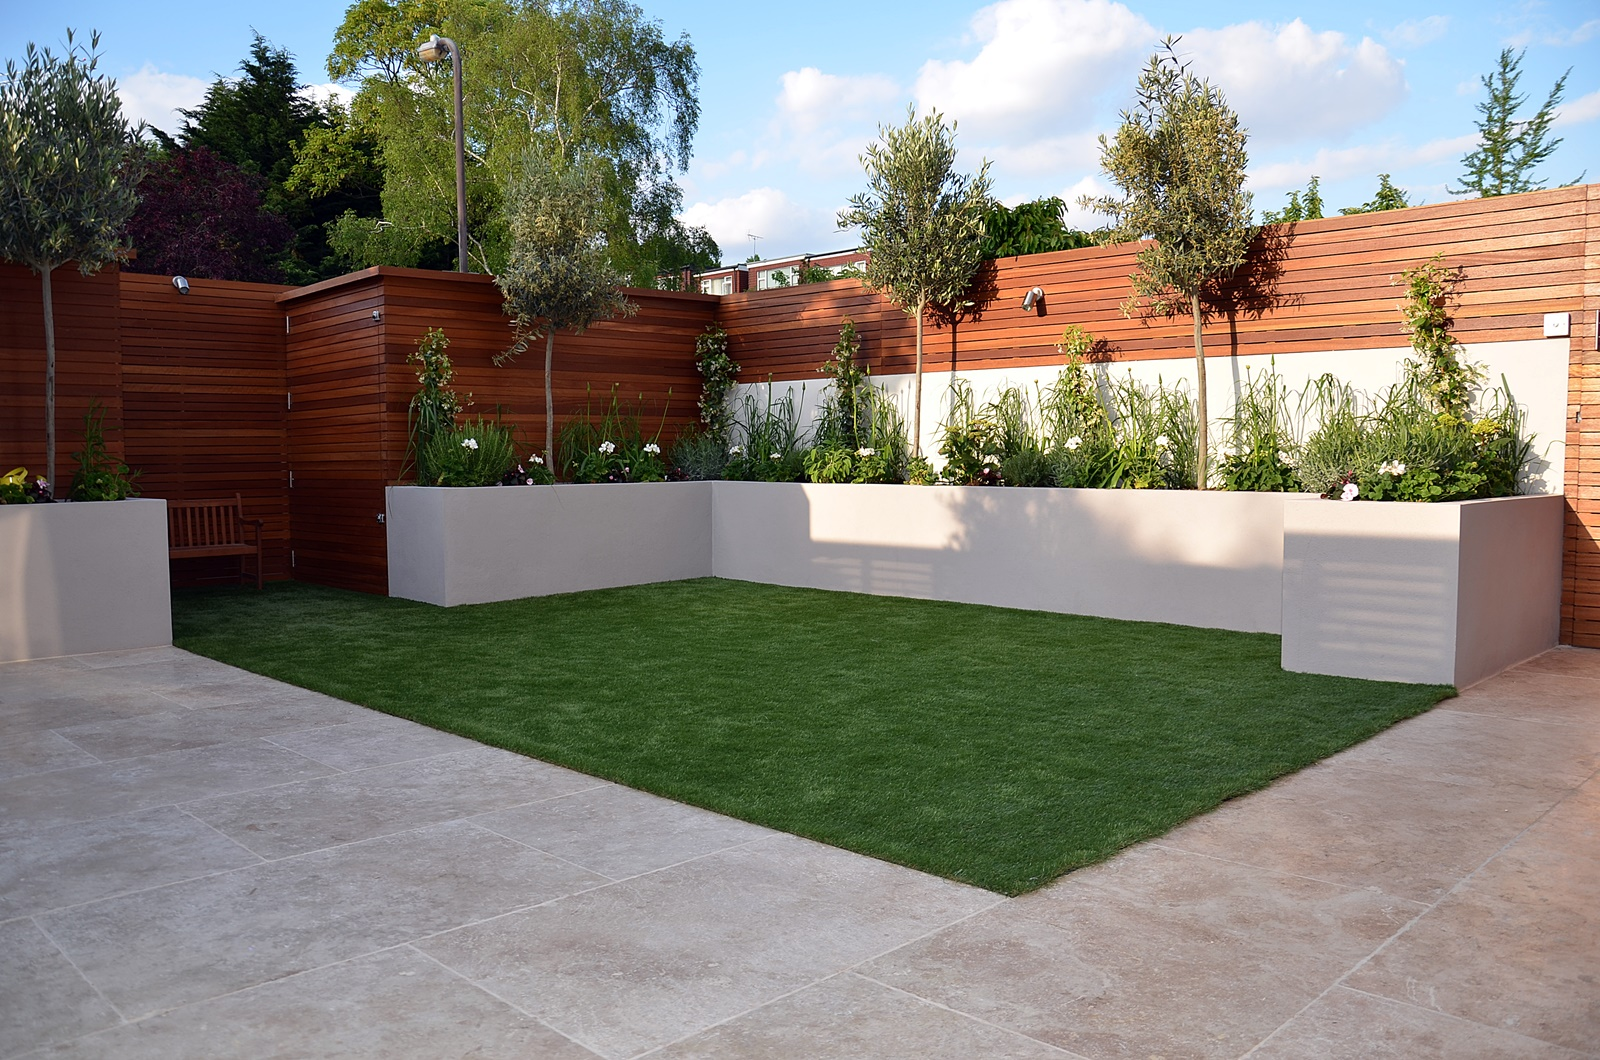 Modern garden design fulham chelsea clapham battersea for Small garden ideas uk